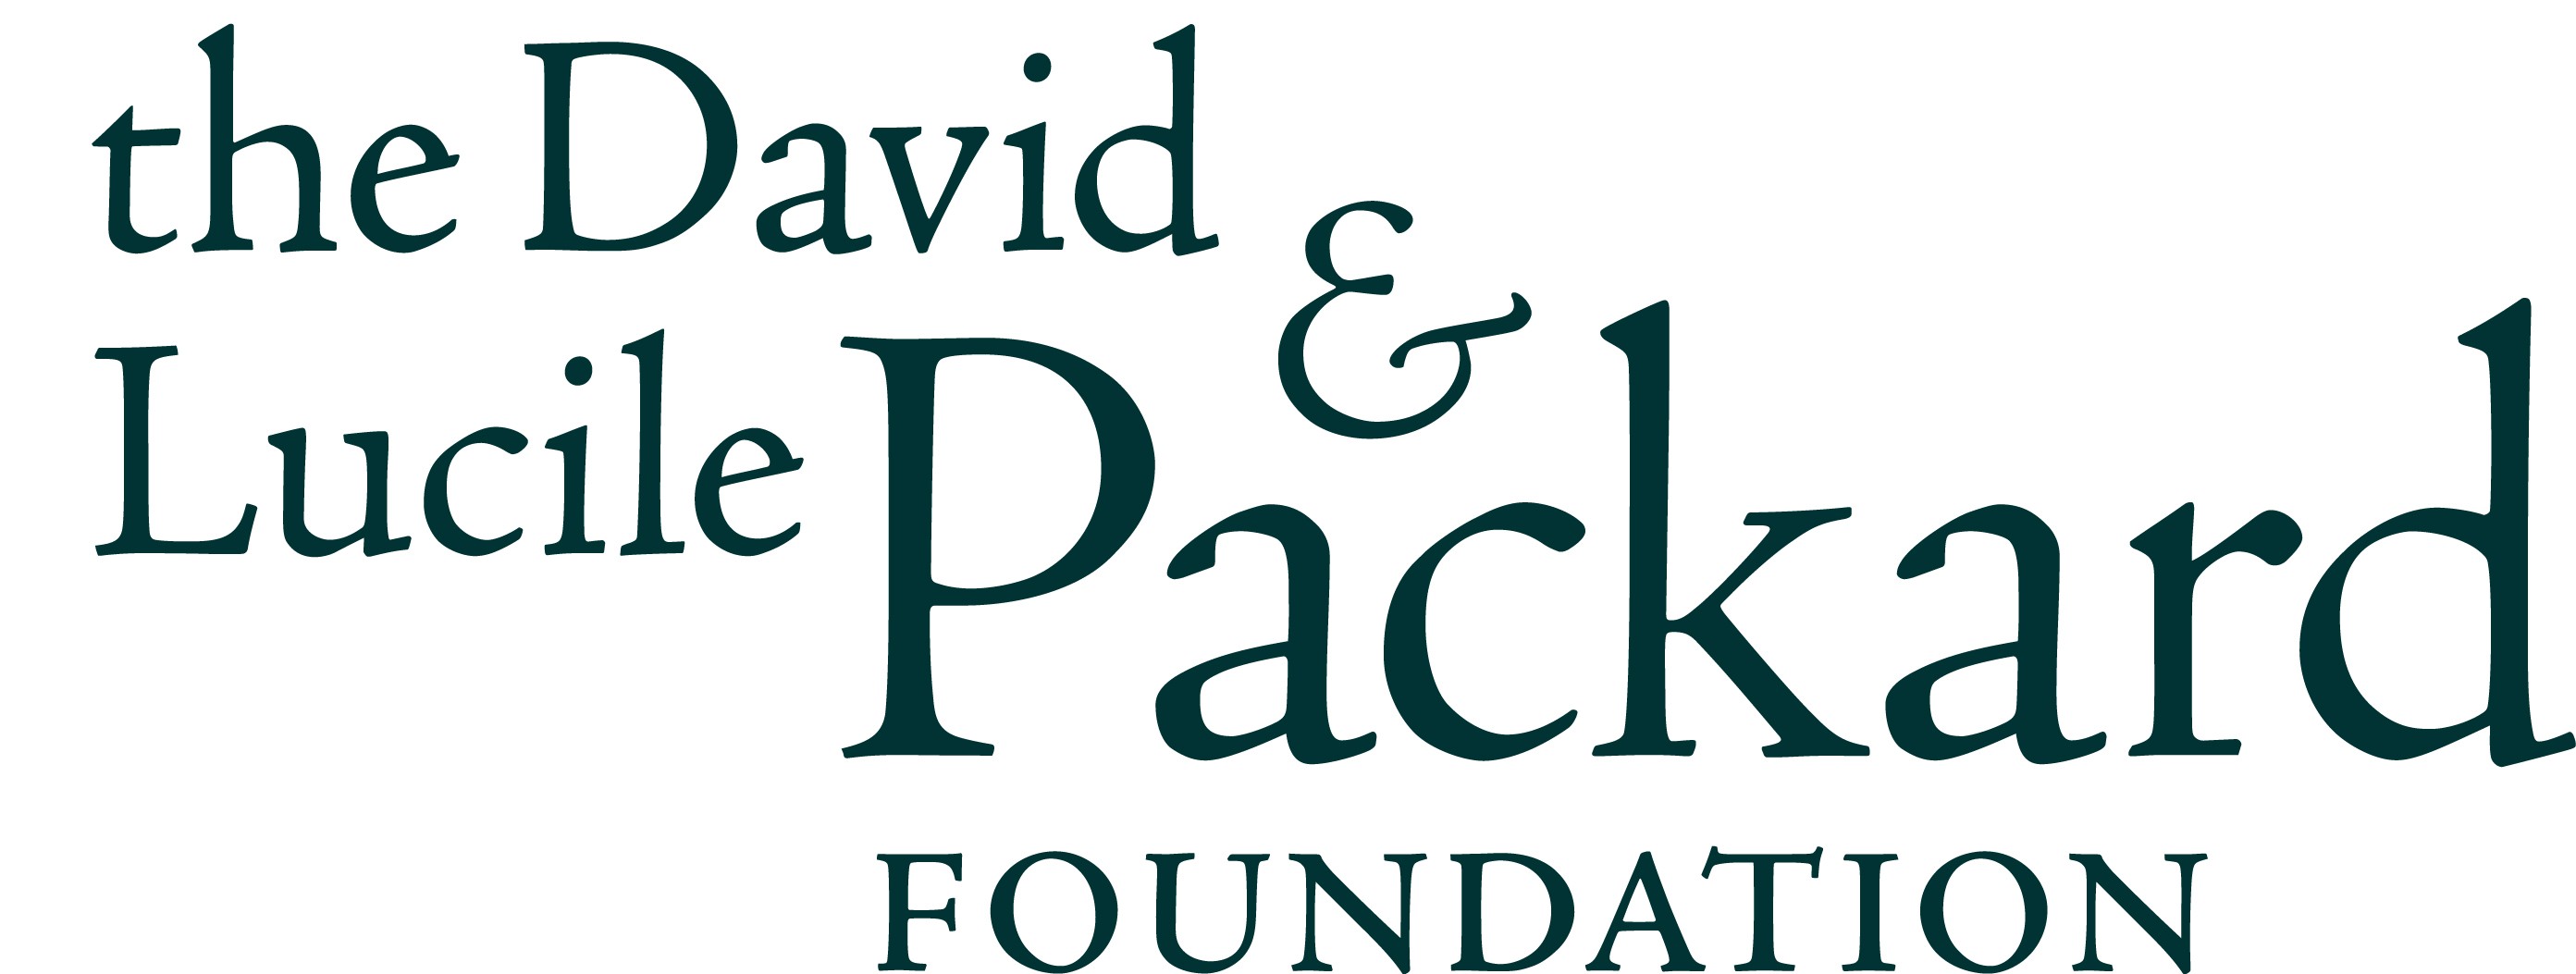 PackardFoundation